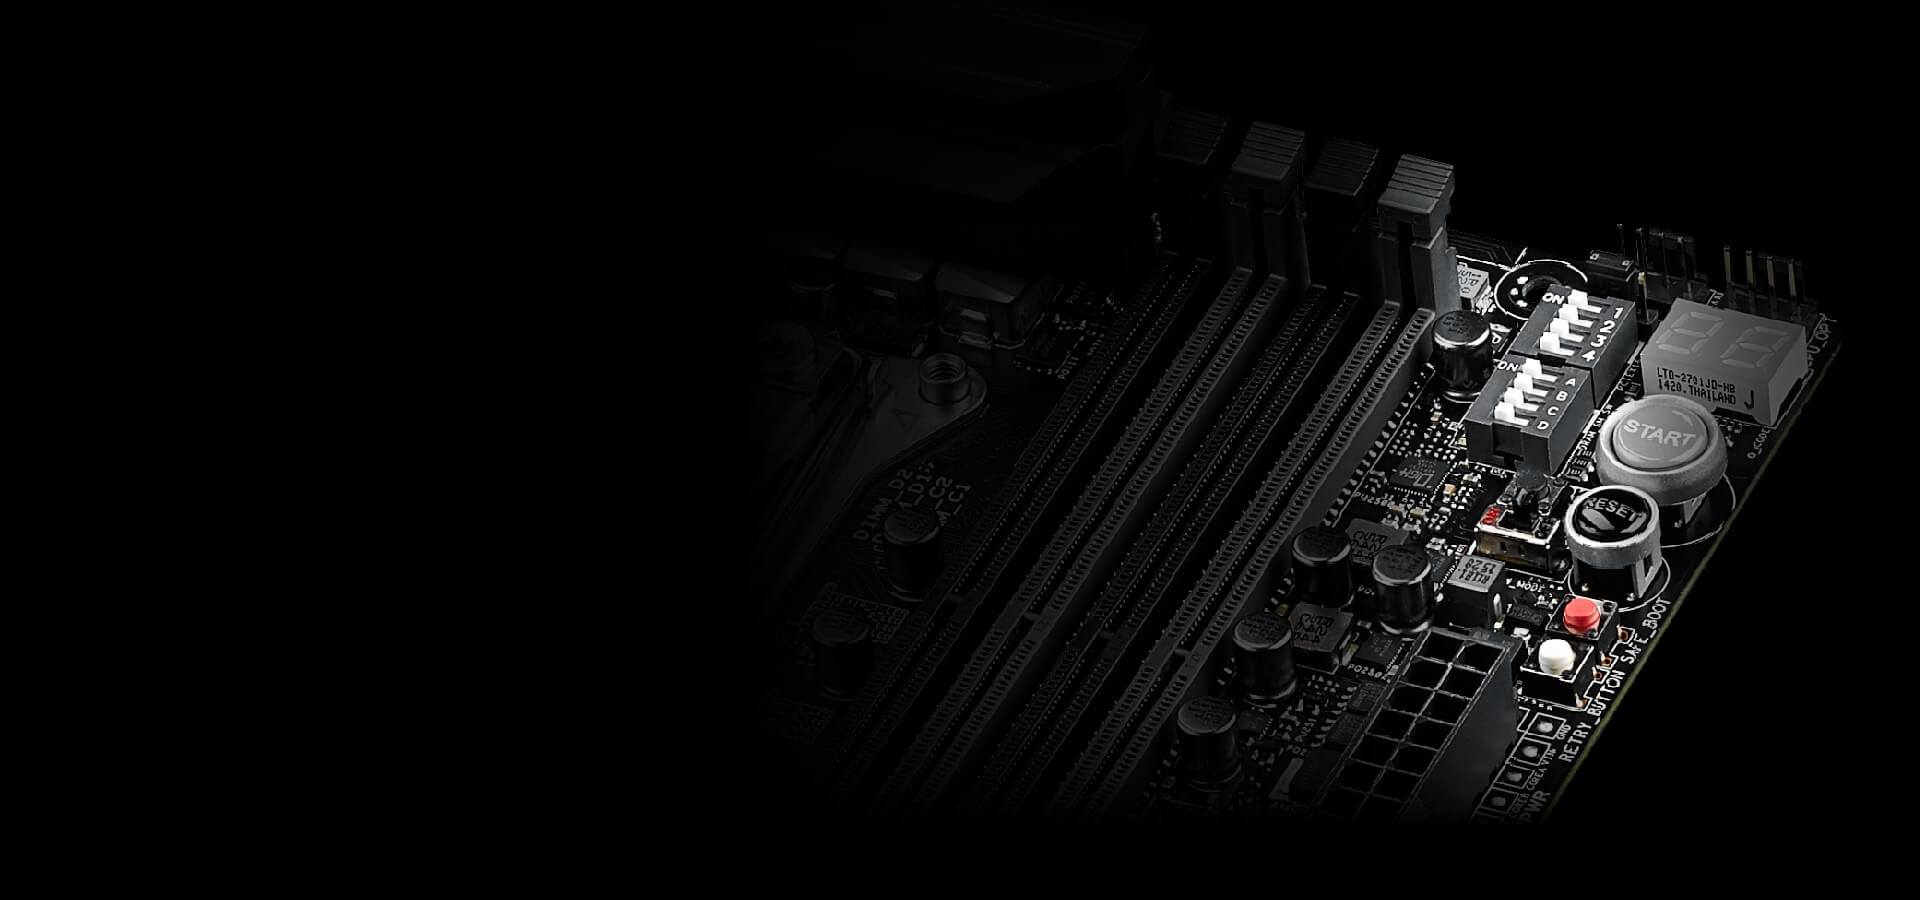 Rog Rampage V Edition 10 Motherboards Asus Usa Circuits Gt Single Transformer Inverterchargerchang L28537 Nextgr Forget Memory Compatibility Worries As This One Click System Recovery Tool Offers Effortless Upgrades